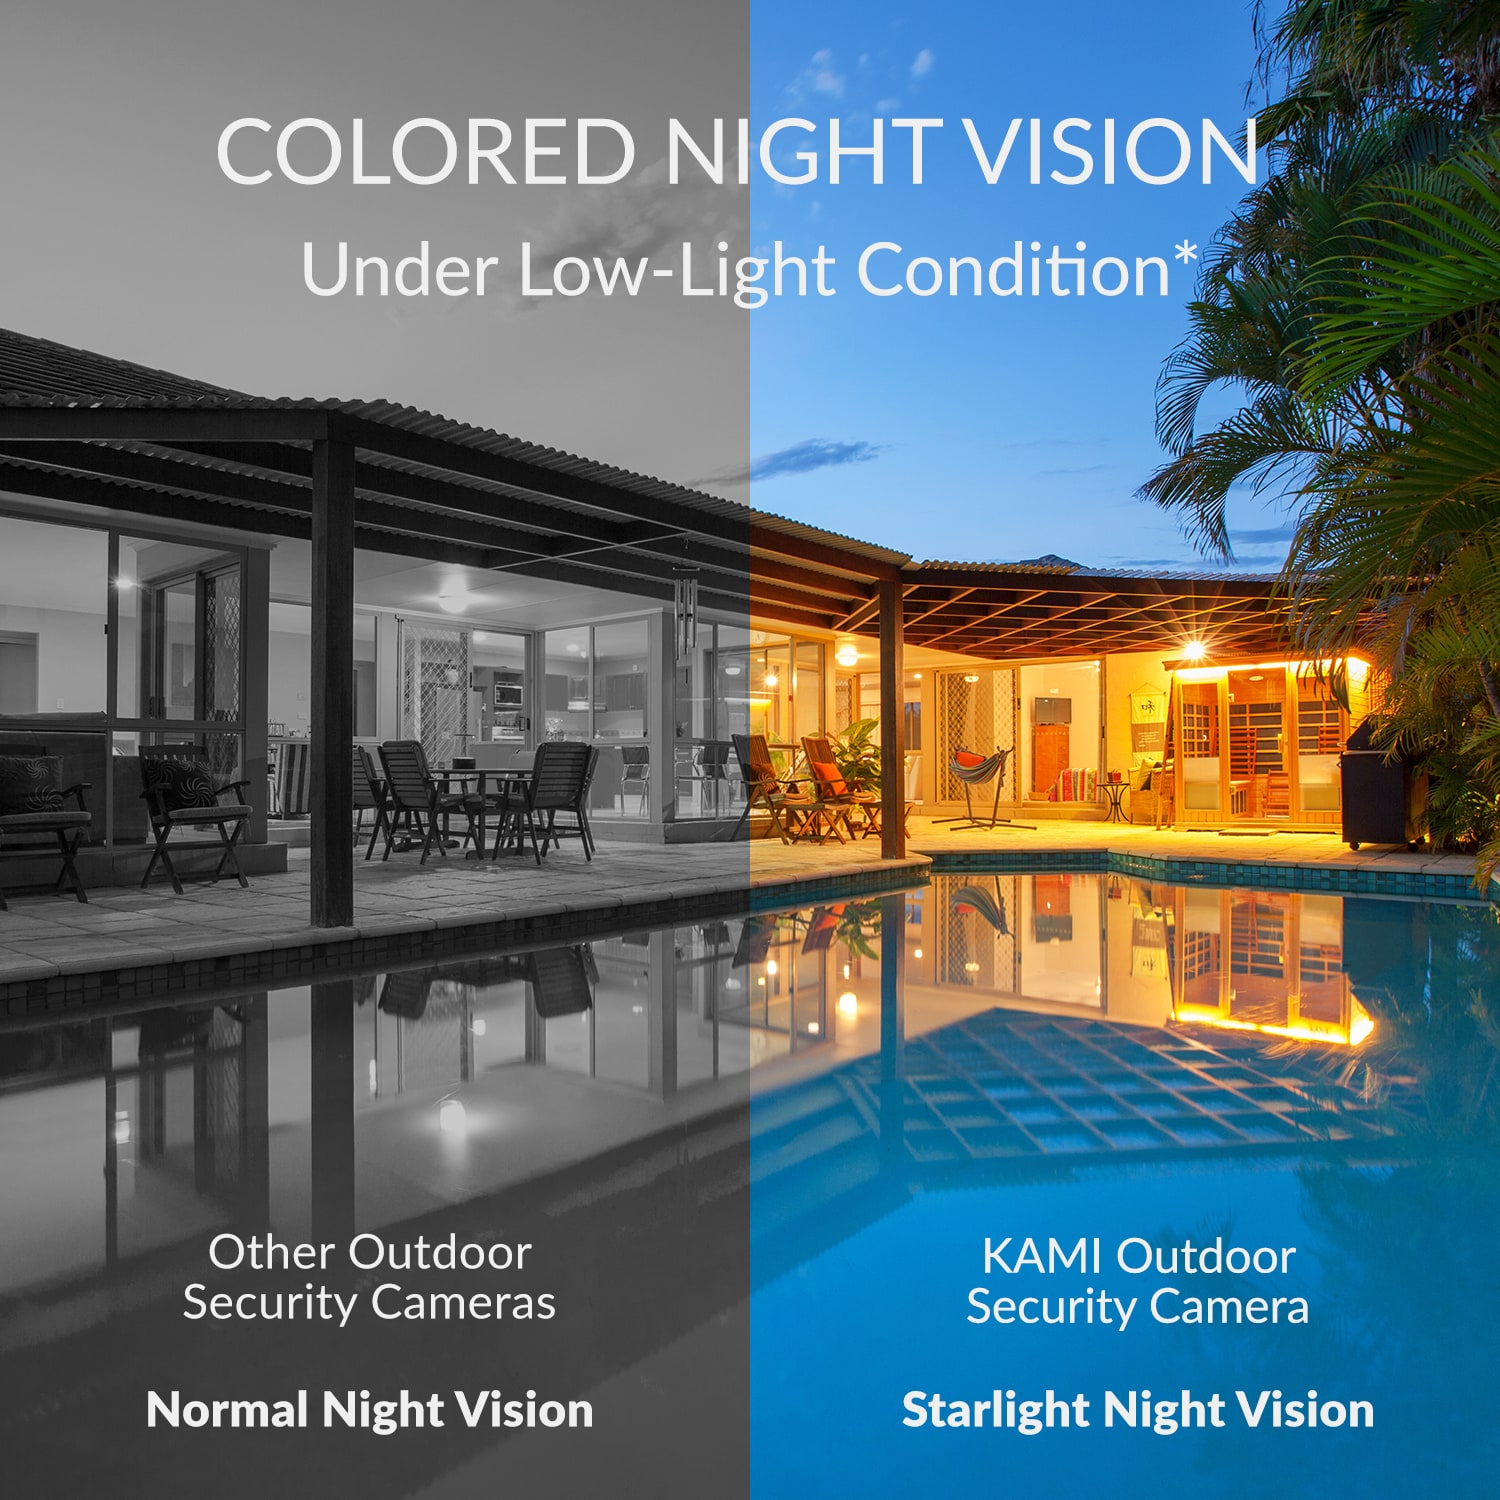 Coloured Night Vision - under low light conditions